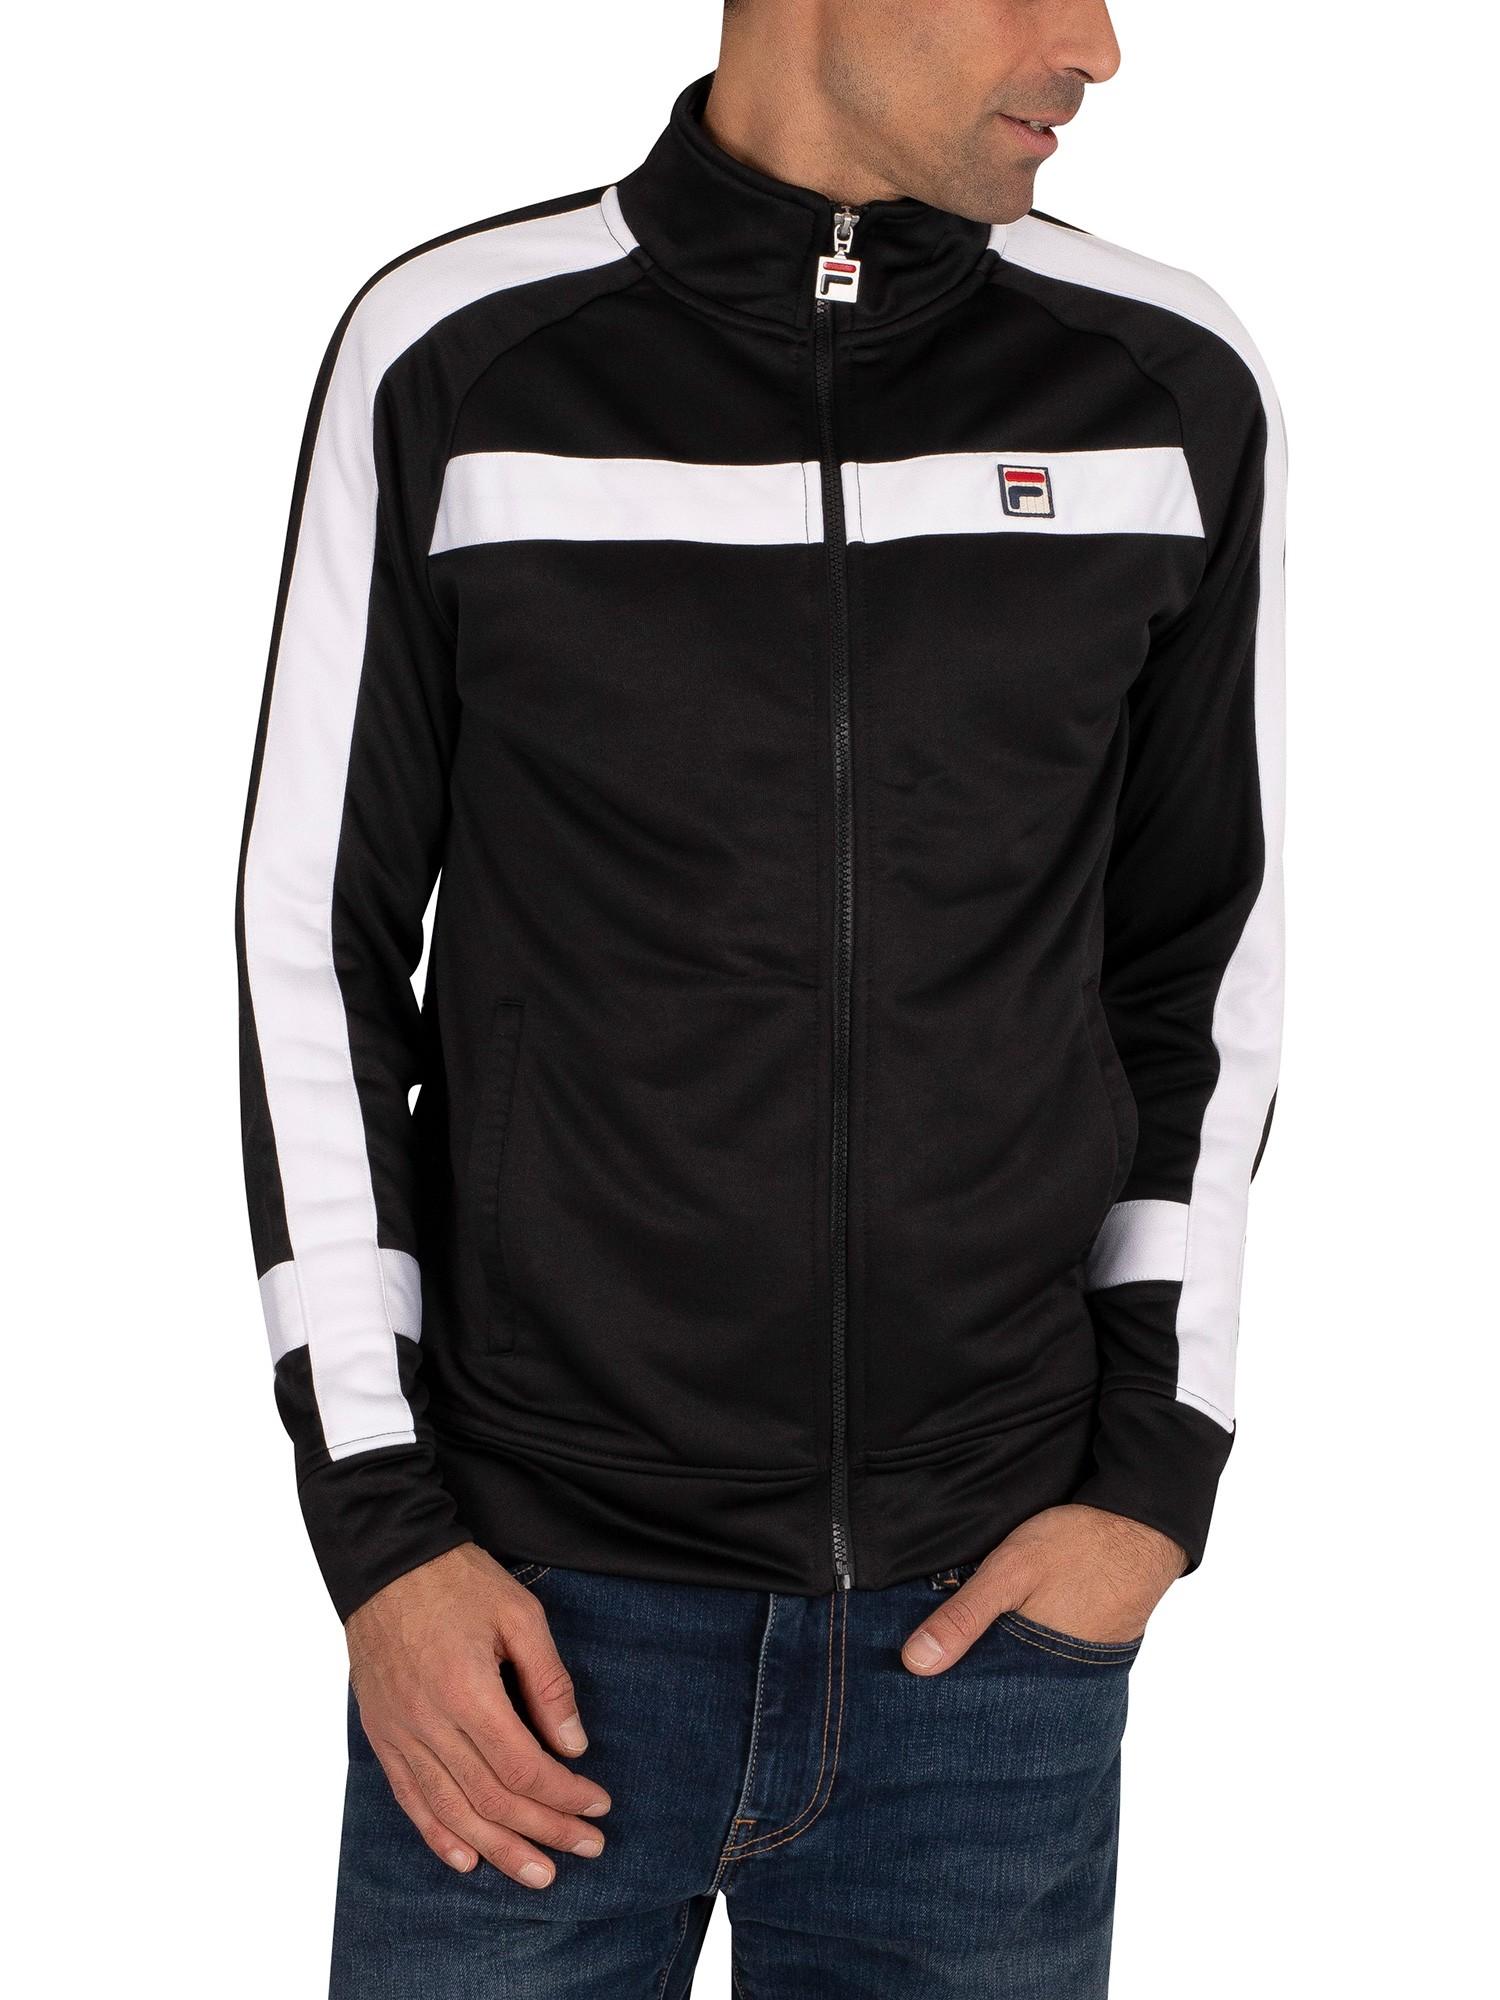 Fila Renzo Laid On Stripe Track Jacket - Black/White